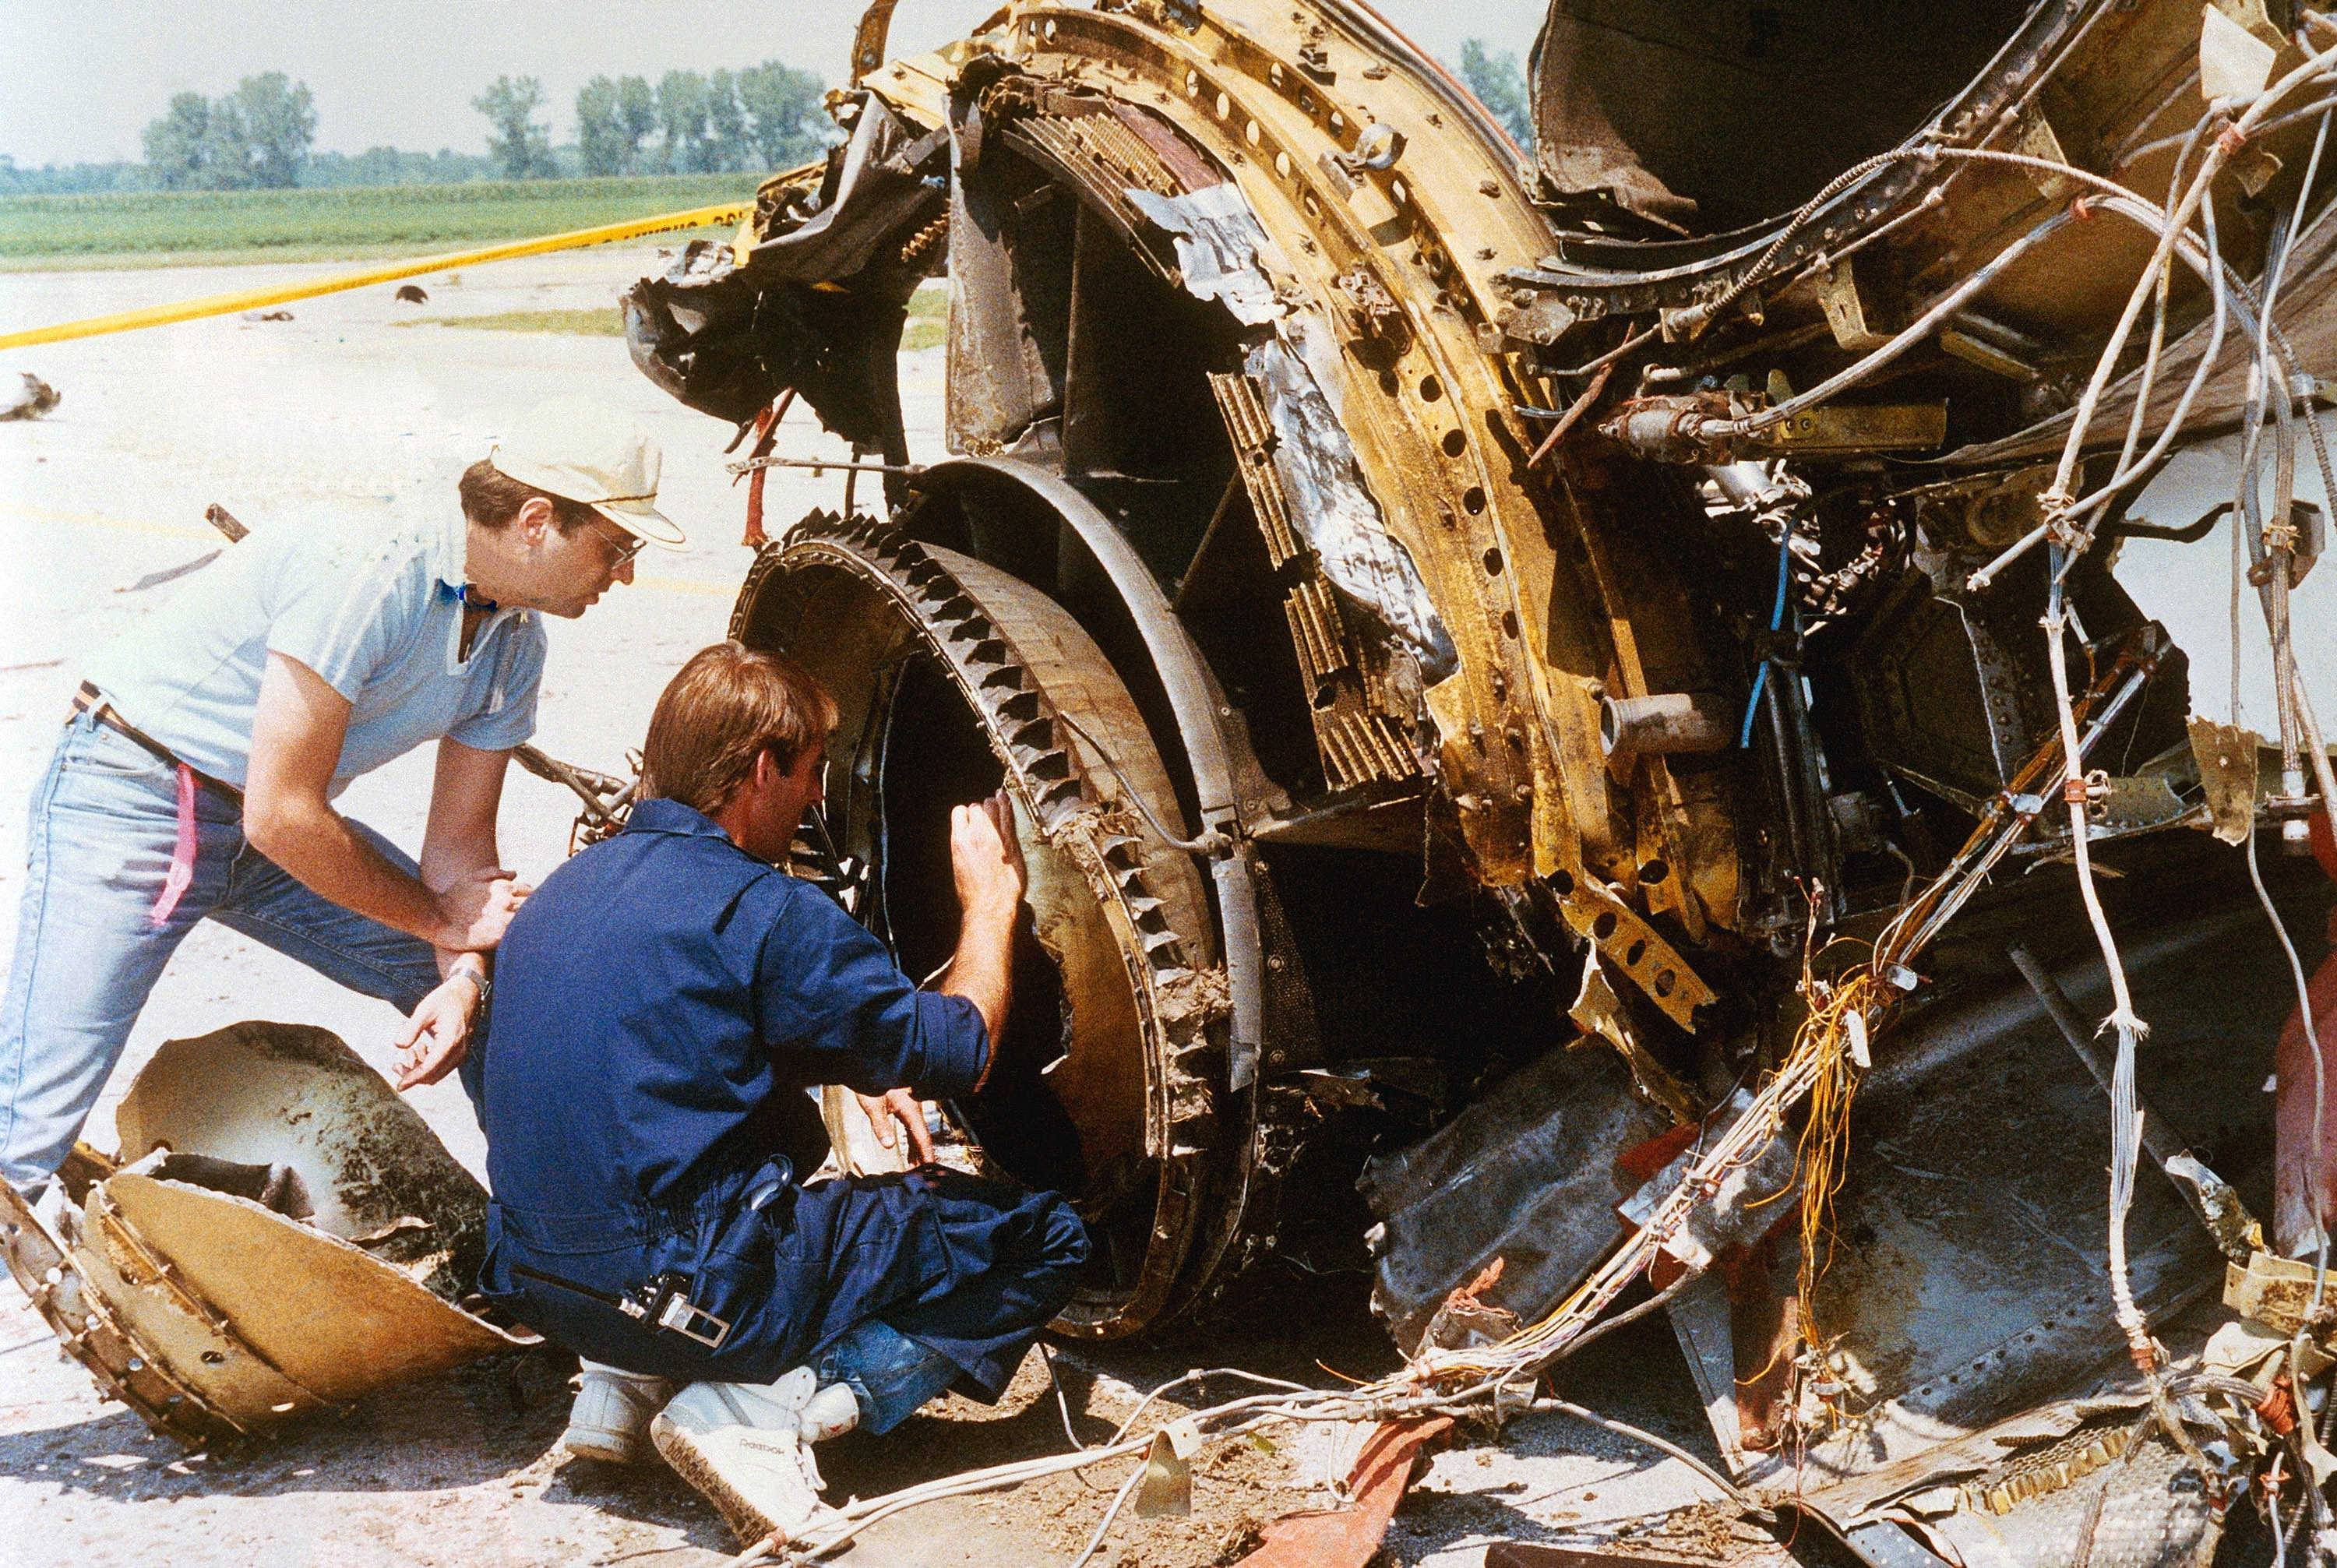 Two National Transportation Safety Board investigators check over the burnt remains of a jet engine from a United Airlines DC-10 in Sioux City, Iowa on July 22, 1989.